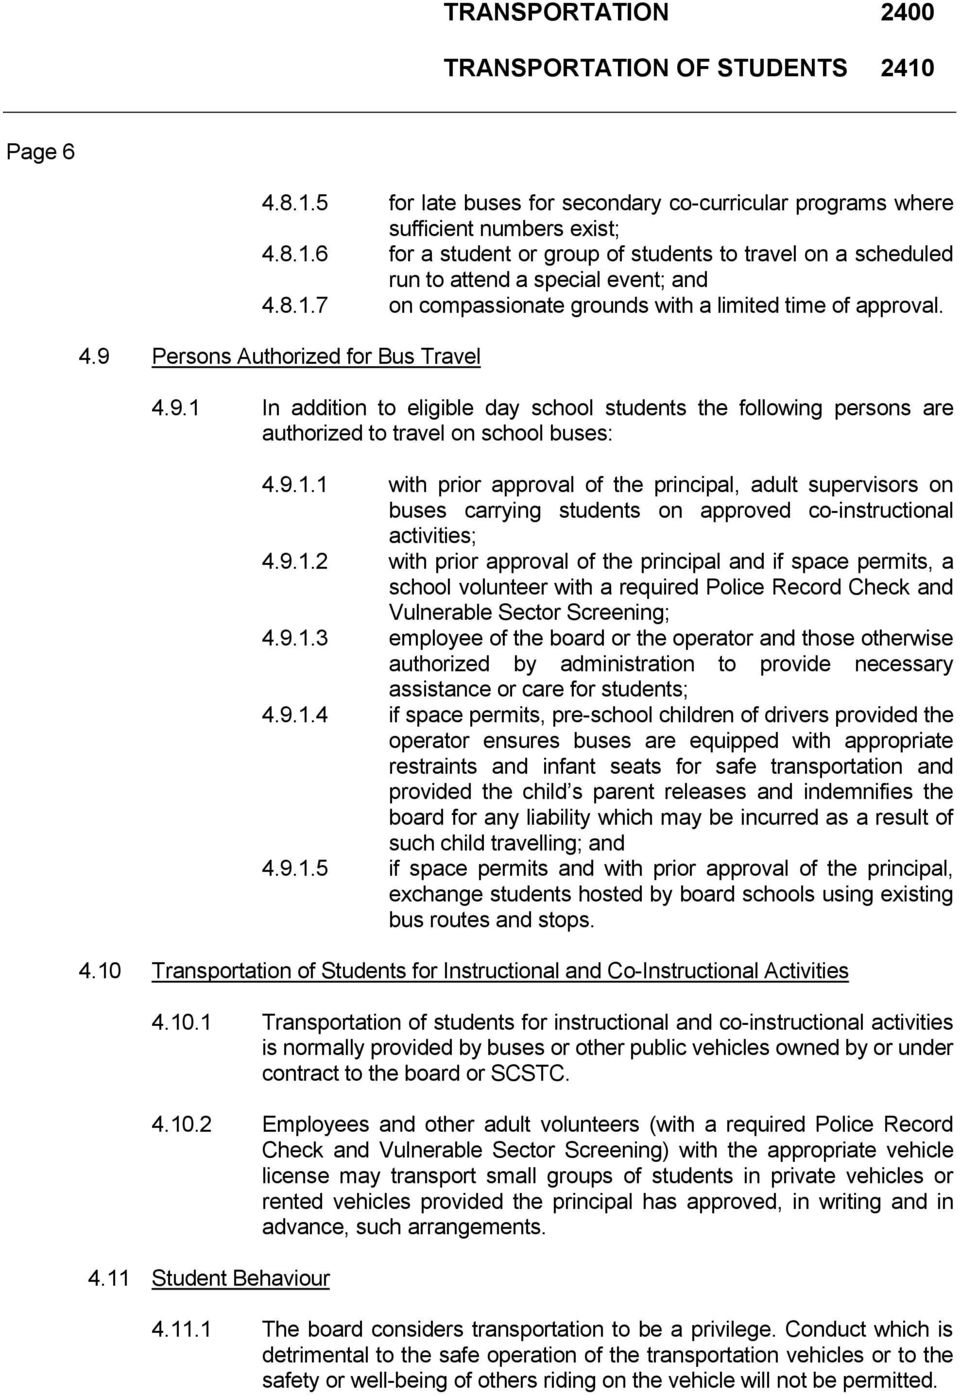 9.1.1 with prior approval of the principal, adult supervisors on buses carrying students on approved co-instructional activities; 4.9.1.2 with prior approval of the principal and if space permits, a school volunteer with a required Police Record Check and Vulnerable Sector Screening; 4.